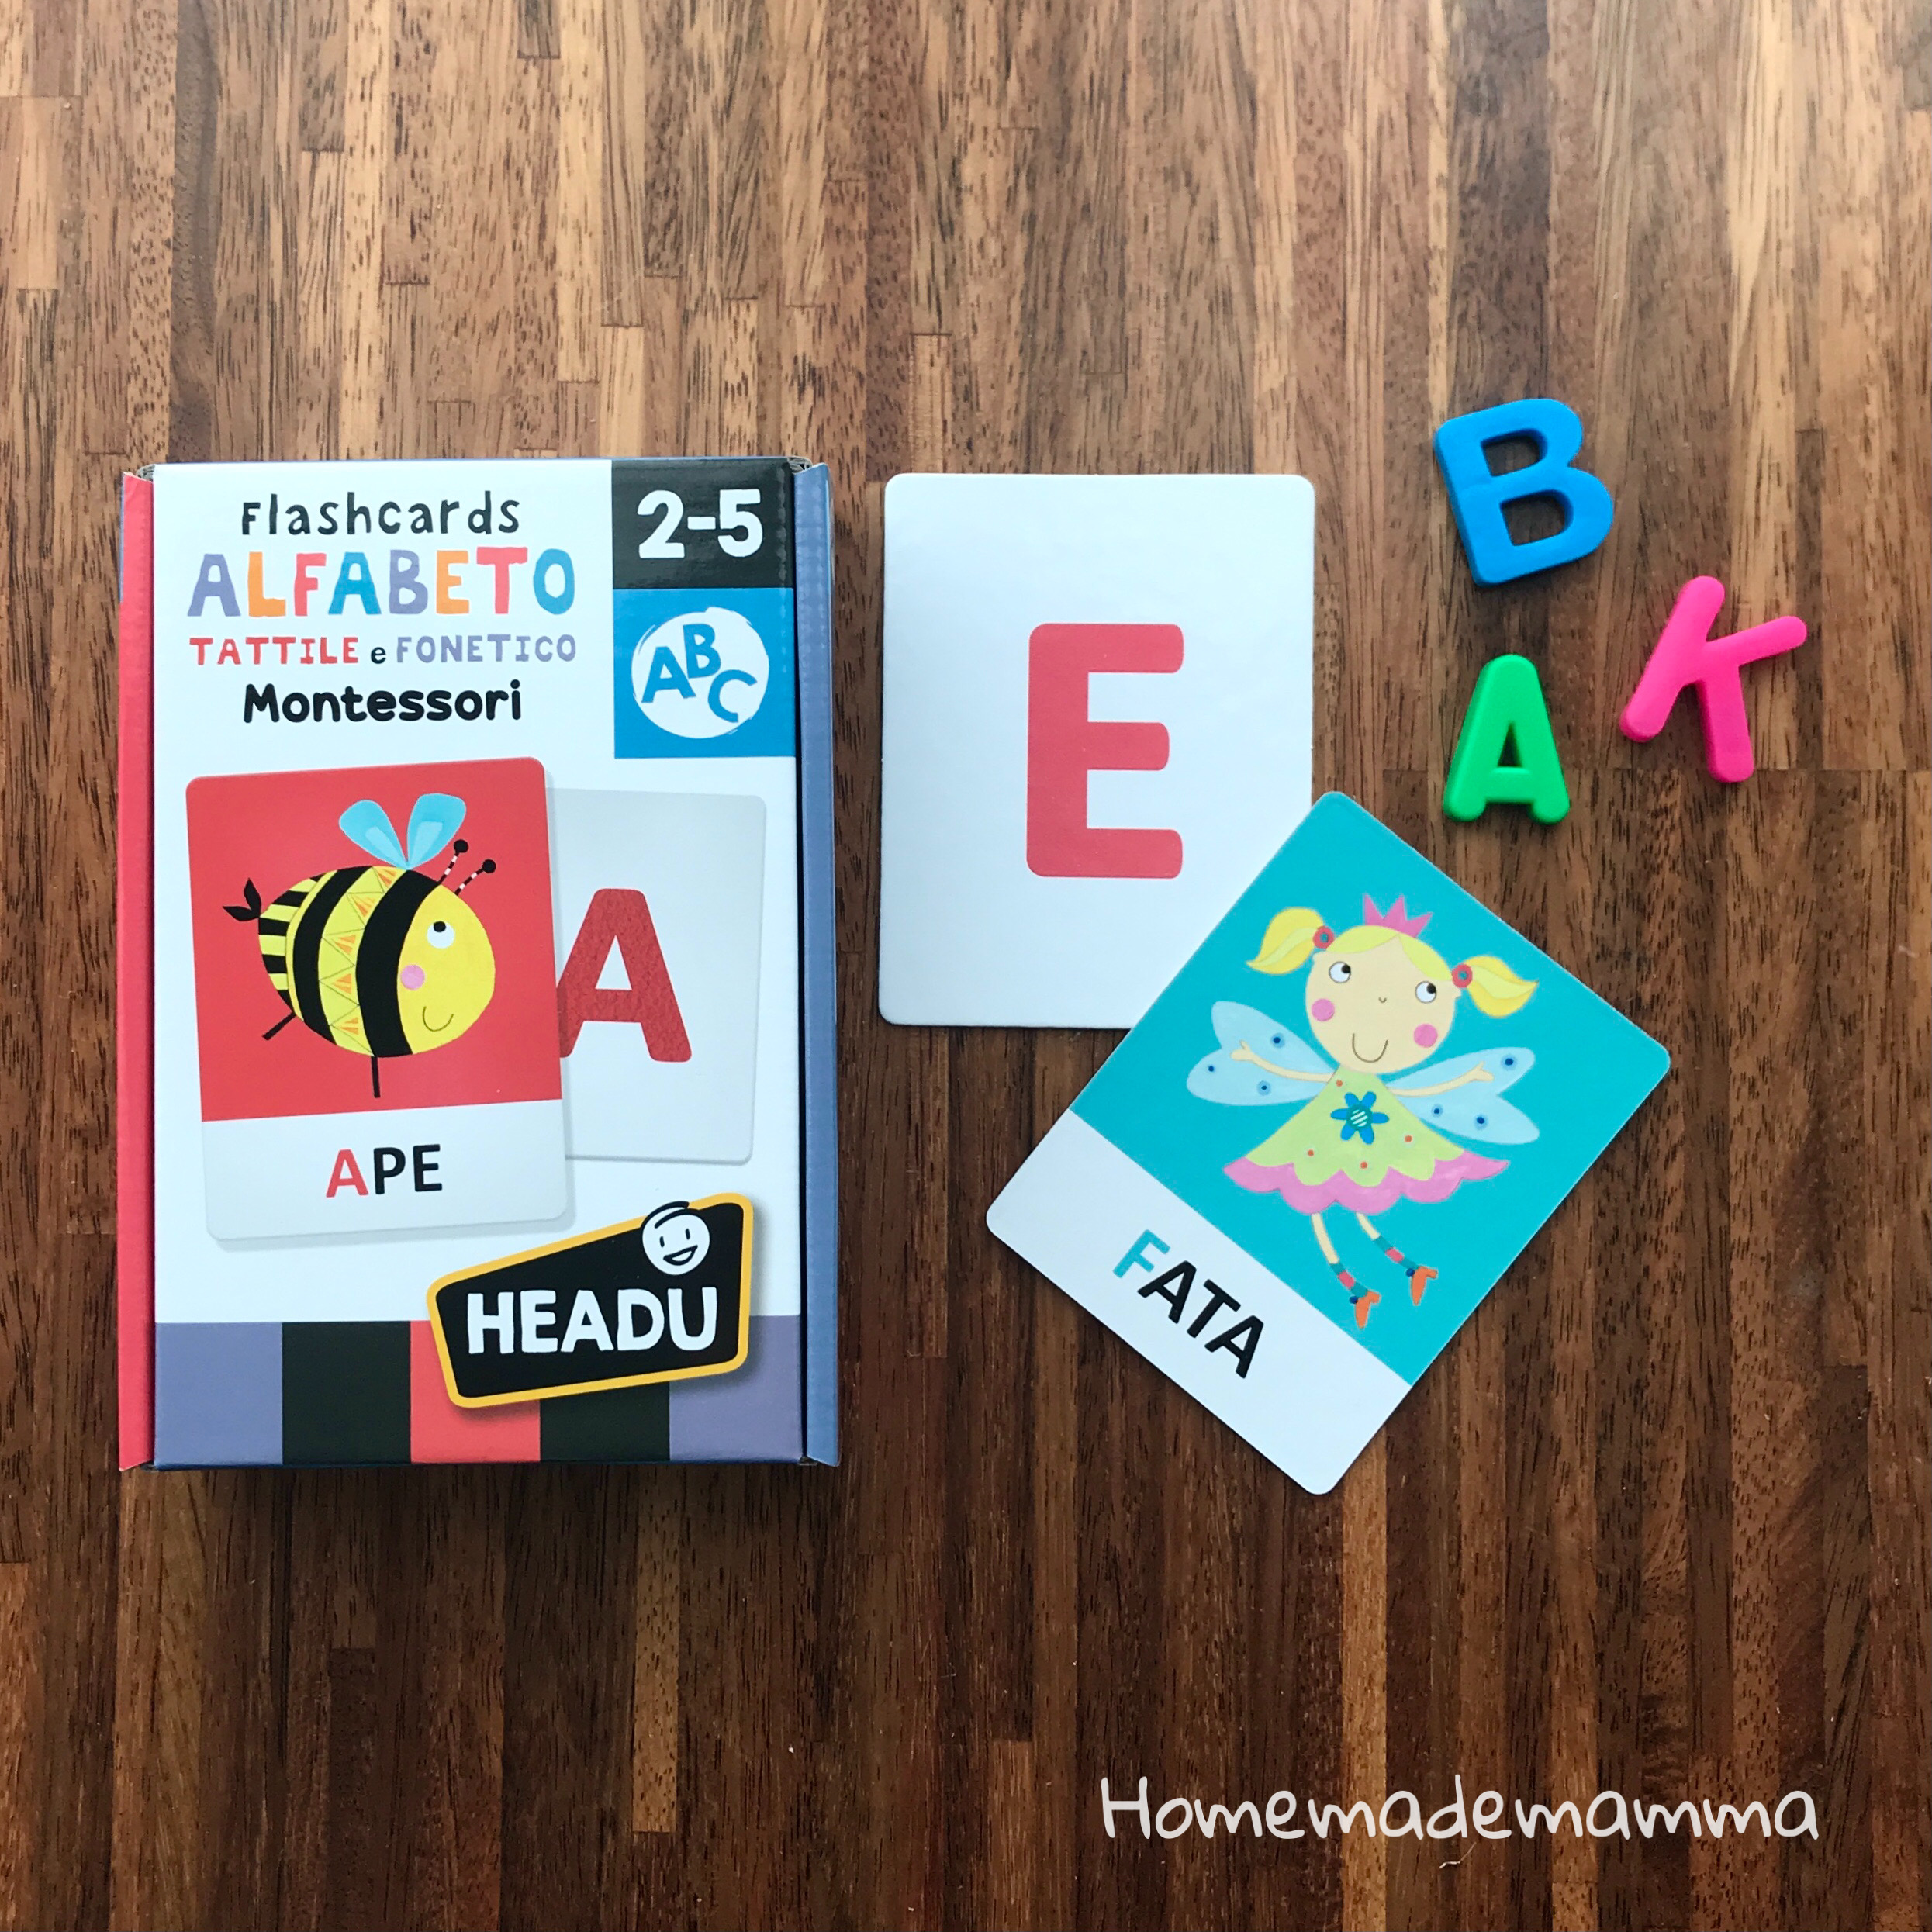 giochi headu flashcards montessori fonetiche tattili lettere